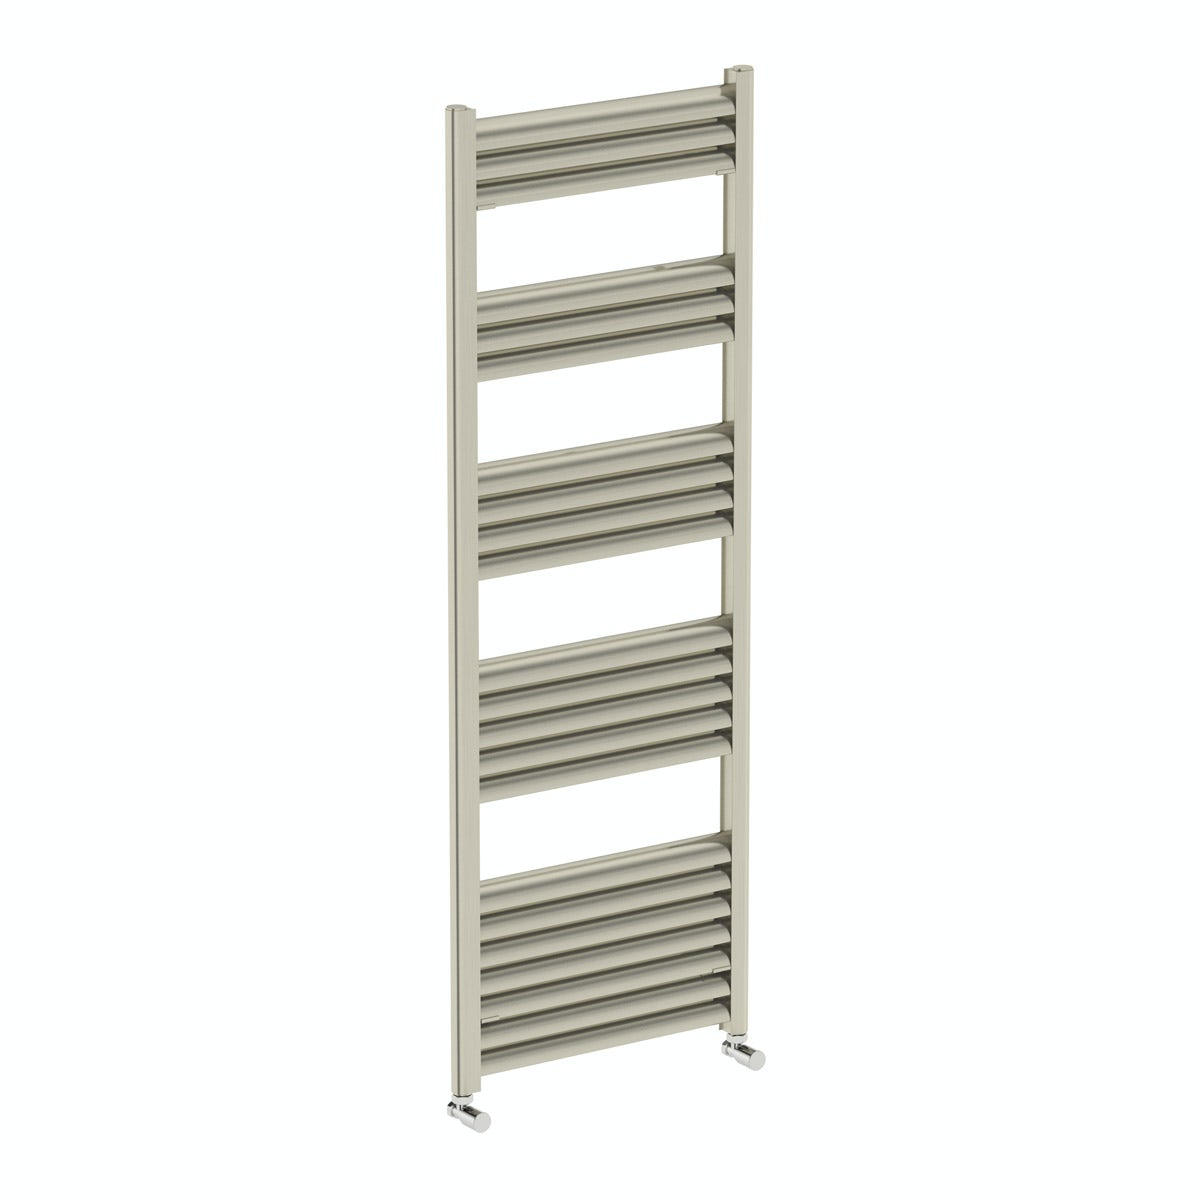 Mode Carter heated towel rail 1400 x 500